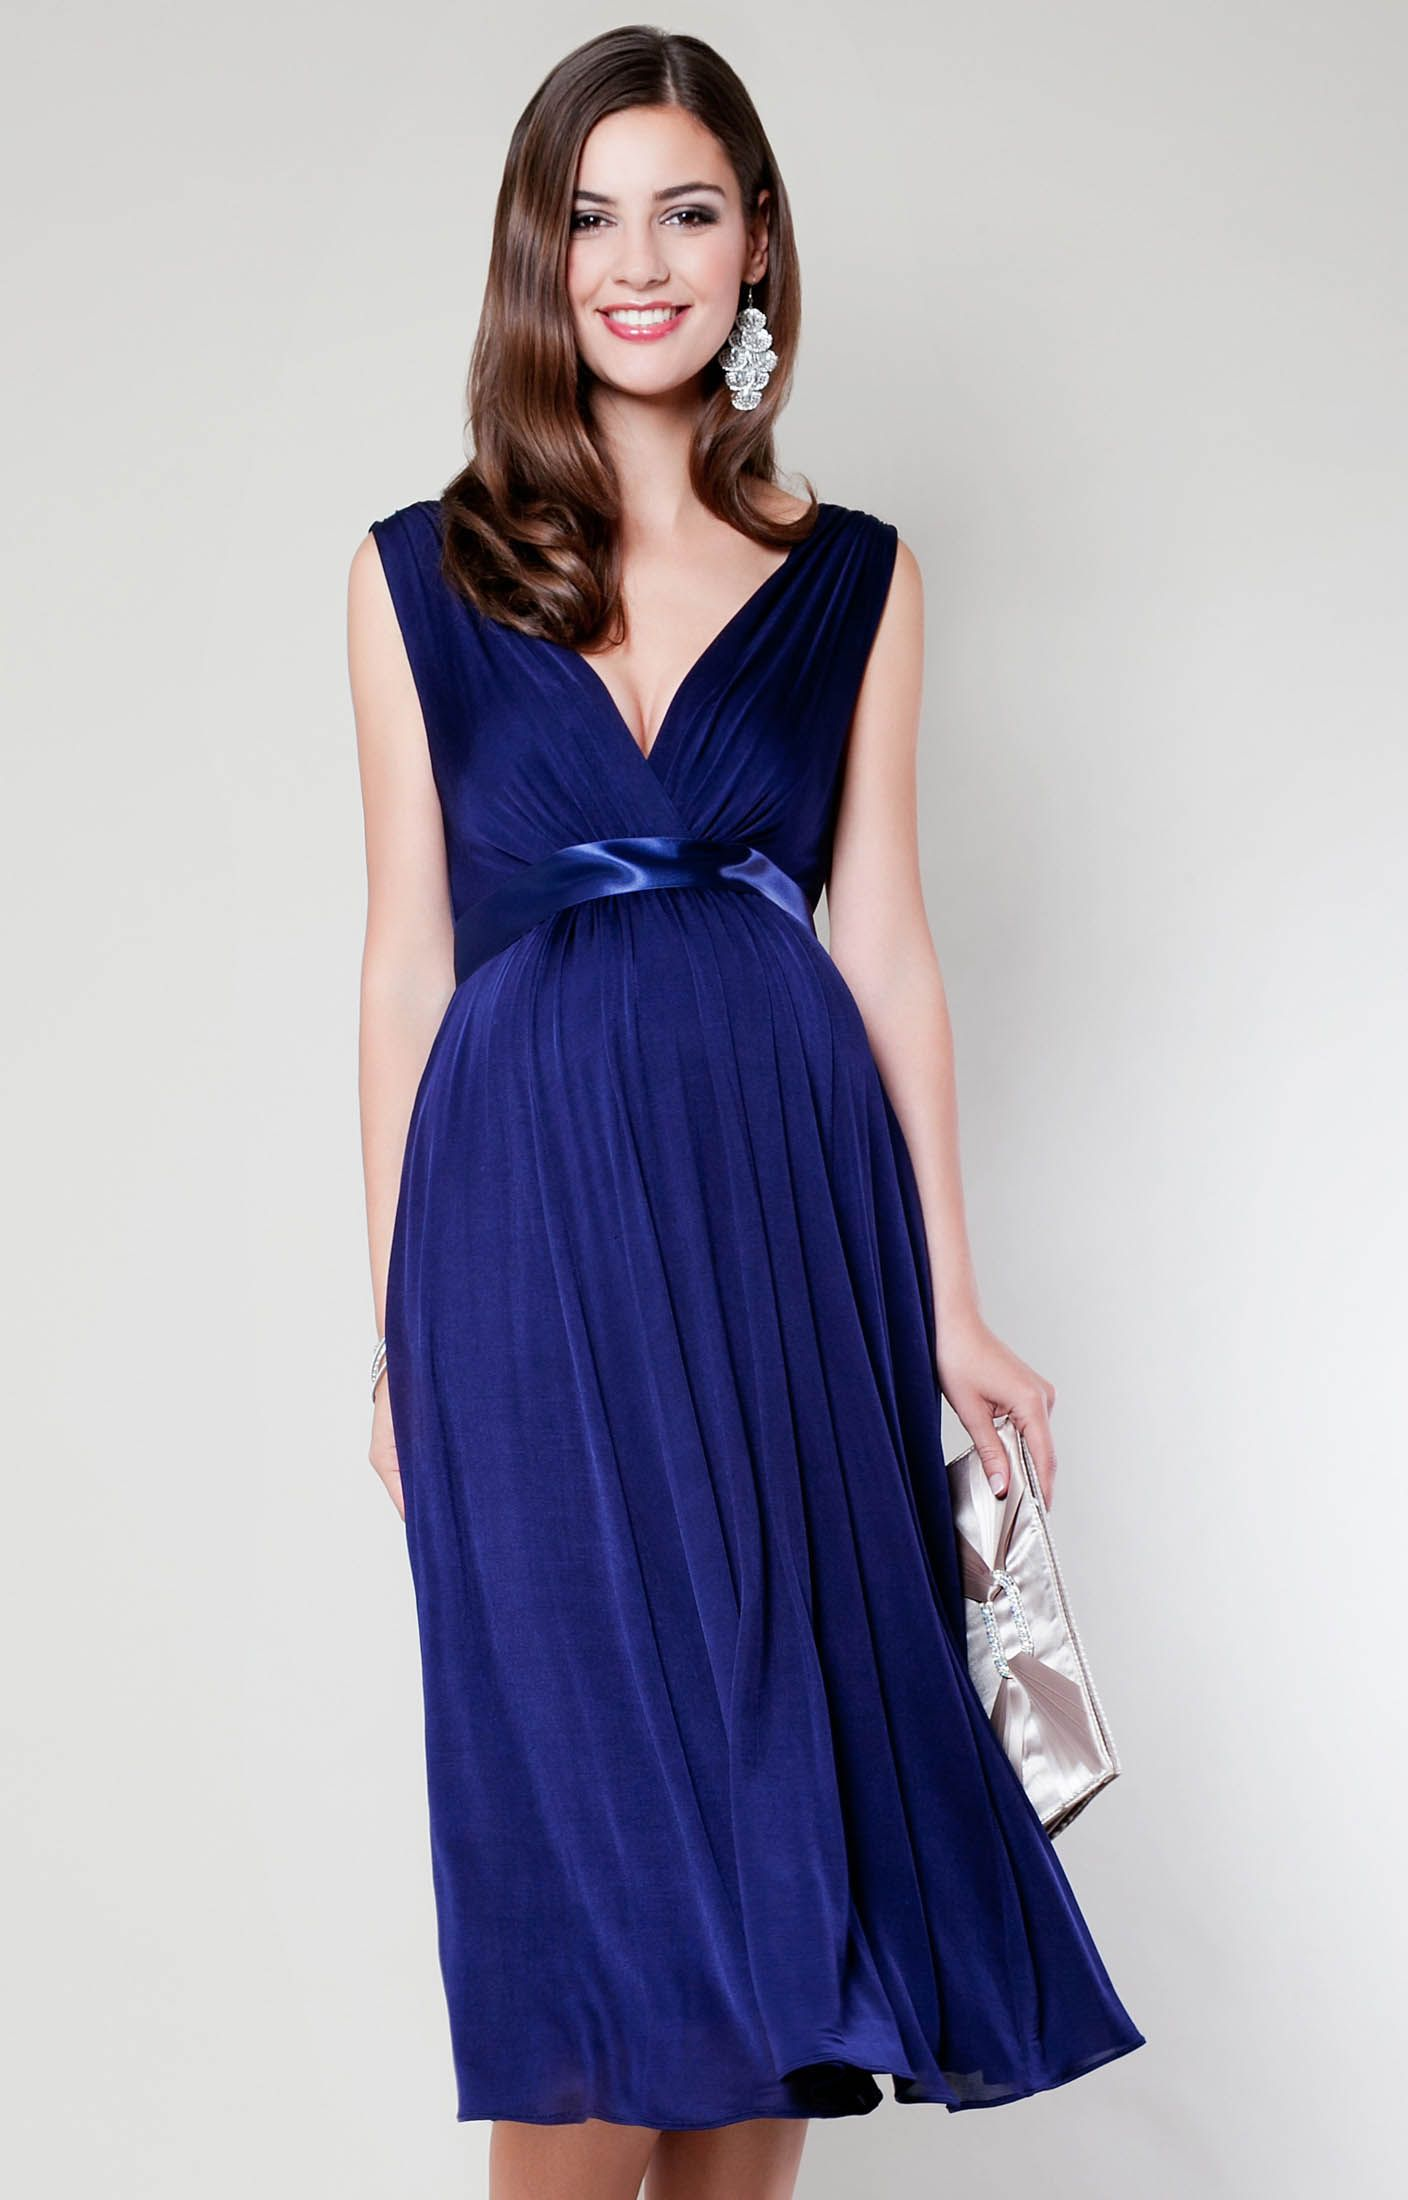 f137e24cb52 Sashay into the party in style in our Anastasia short maternity gown in  deeply intense Eclipse Blue.